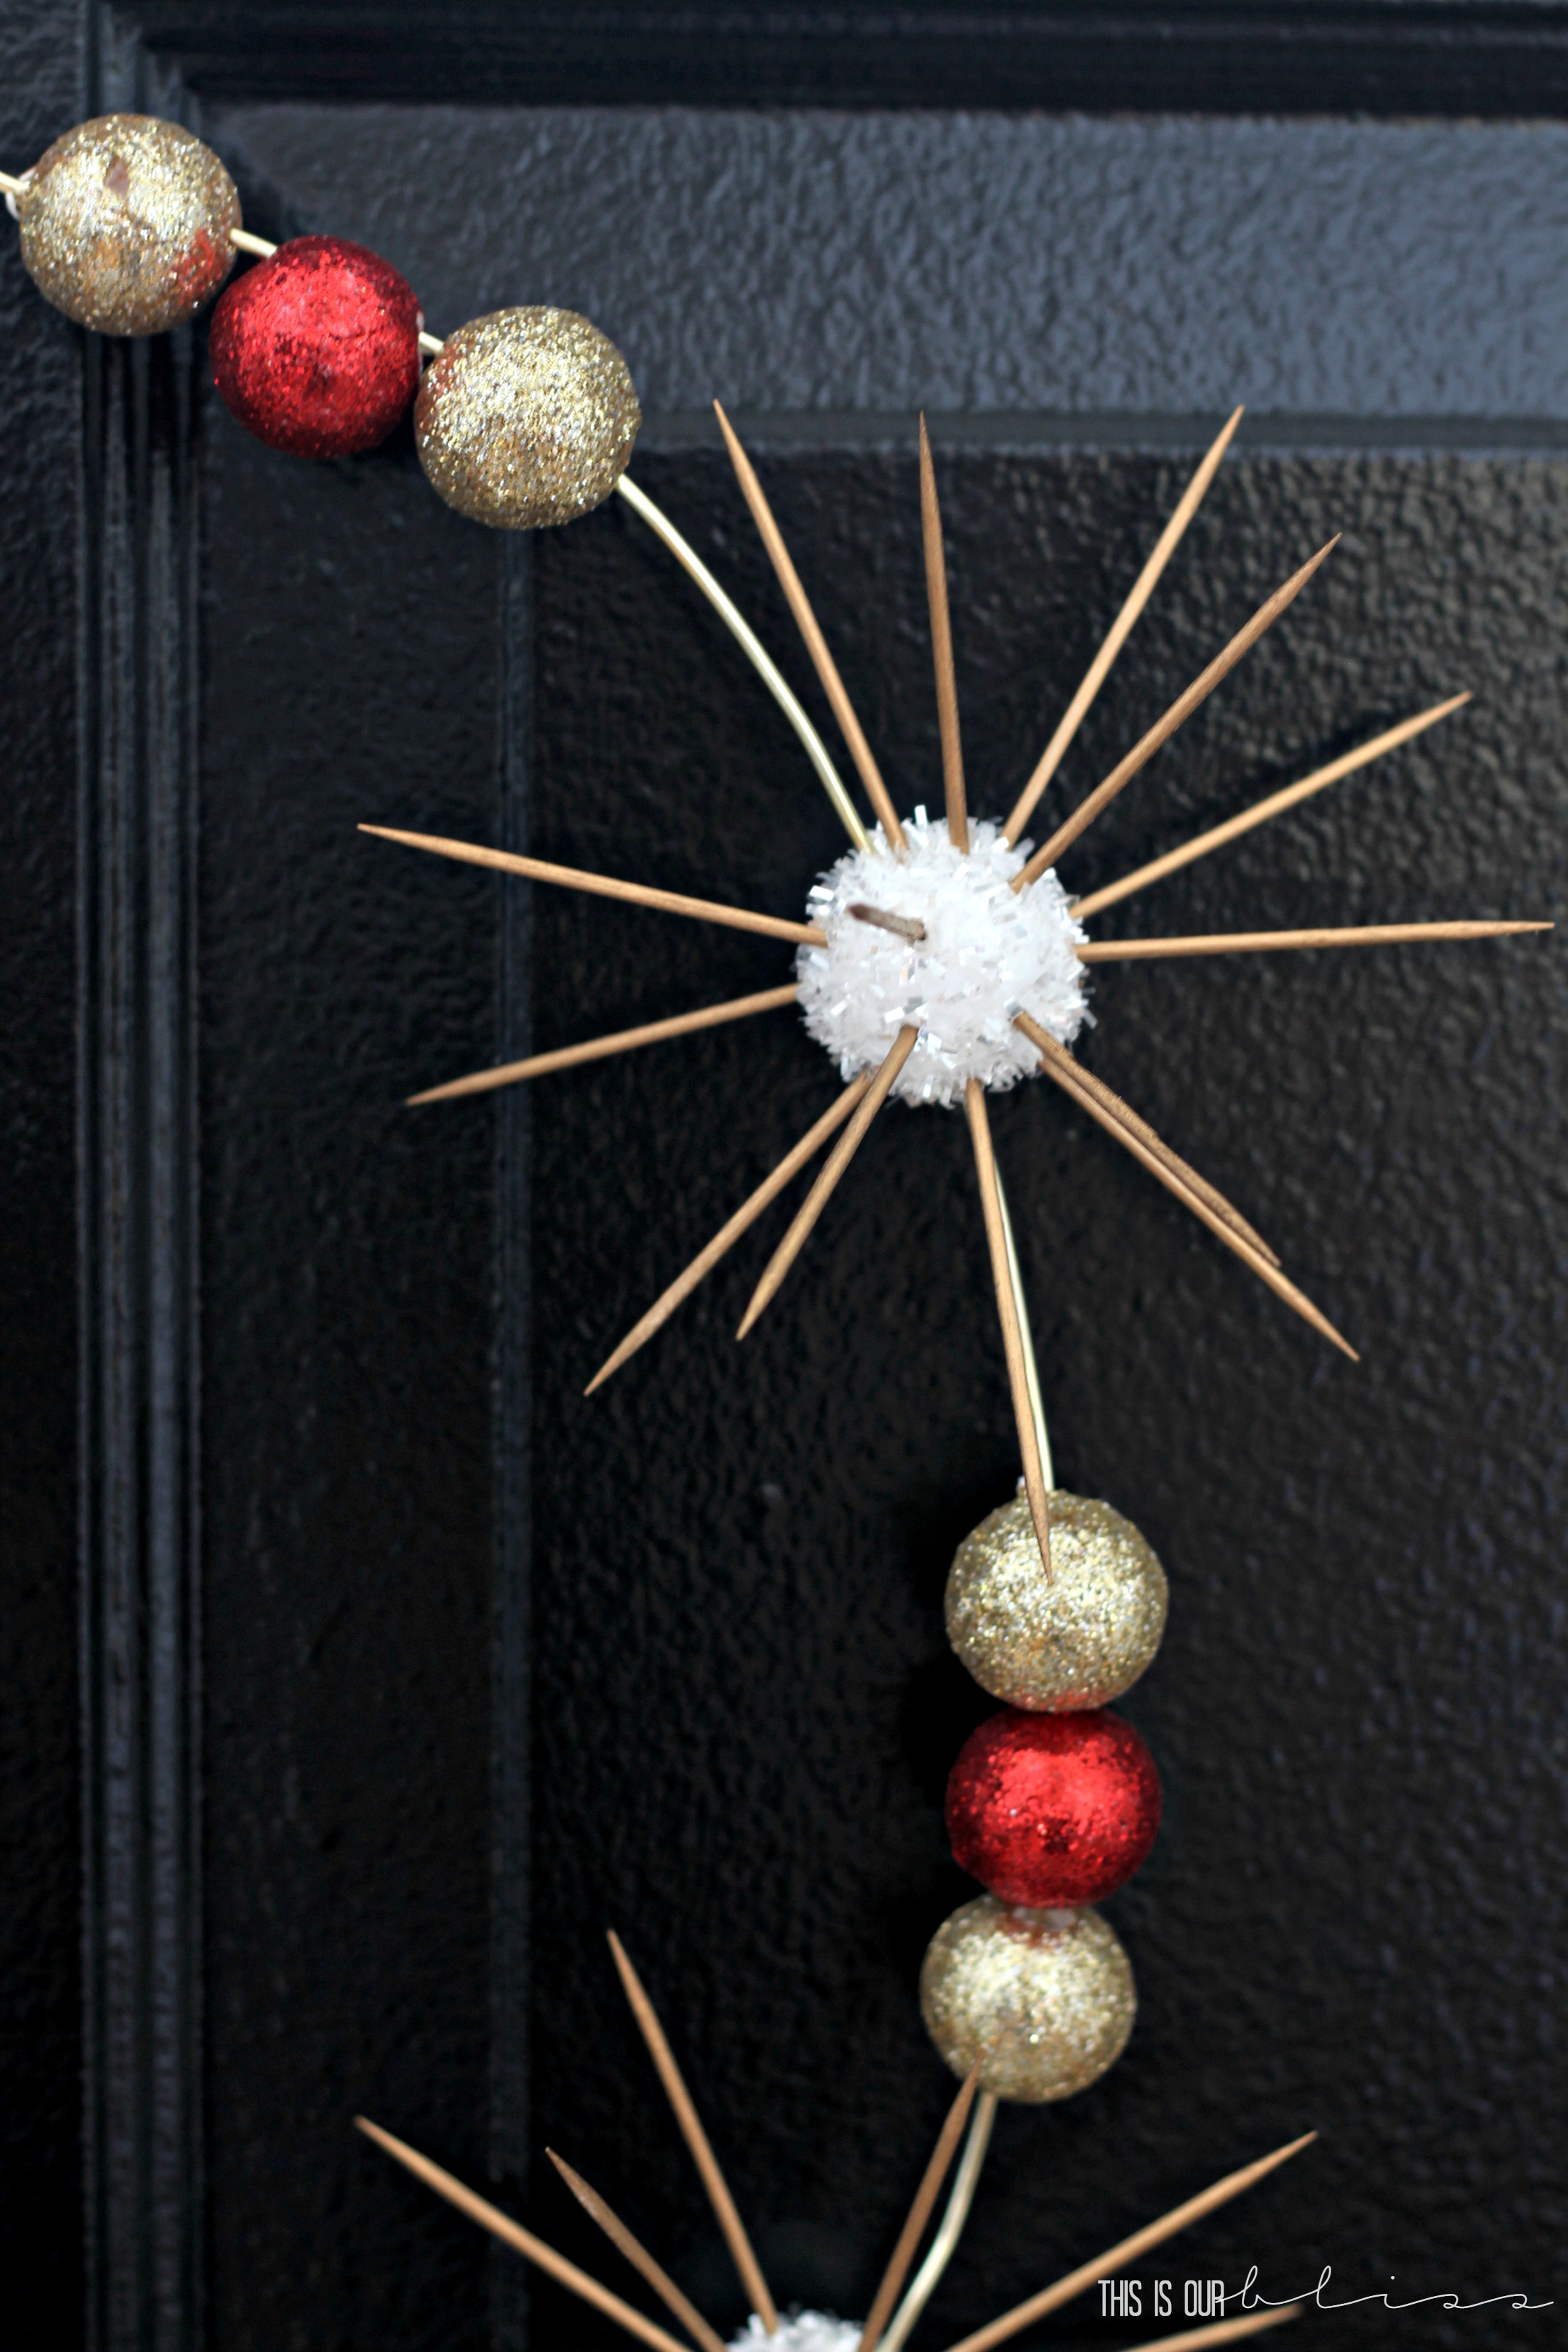 Sputnik christmas ornaments - Then I Started Stringing The Balls On The Wire Once I Determined Grouping And Spacing I Started To Poke The Toothpicks In The White Balls To Form A Mini